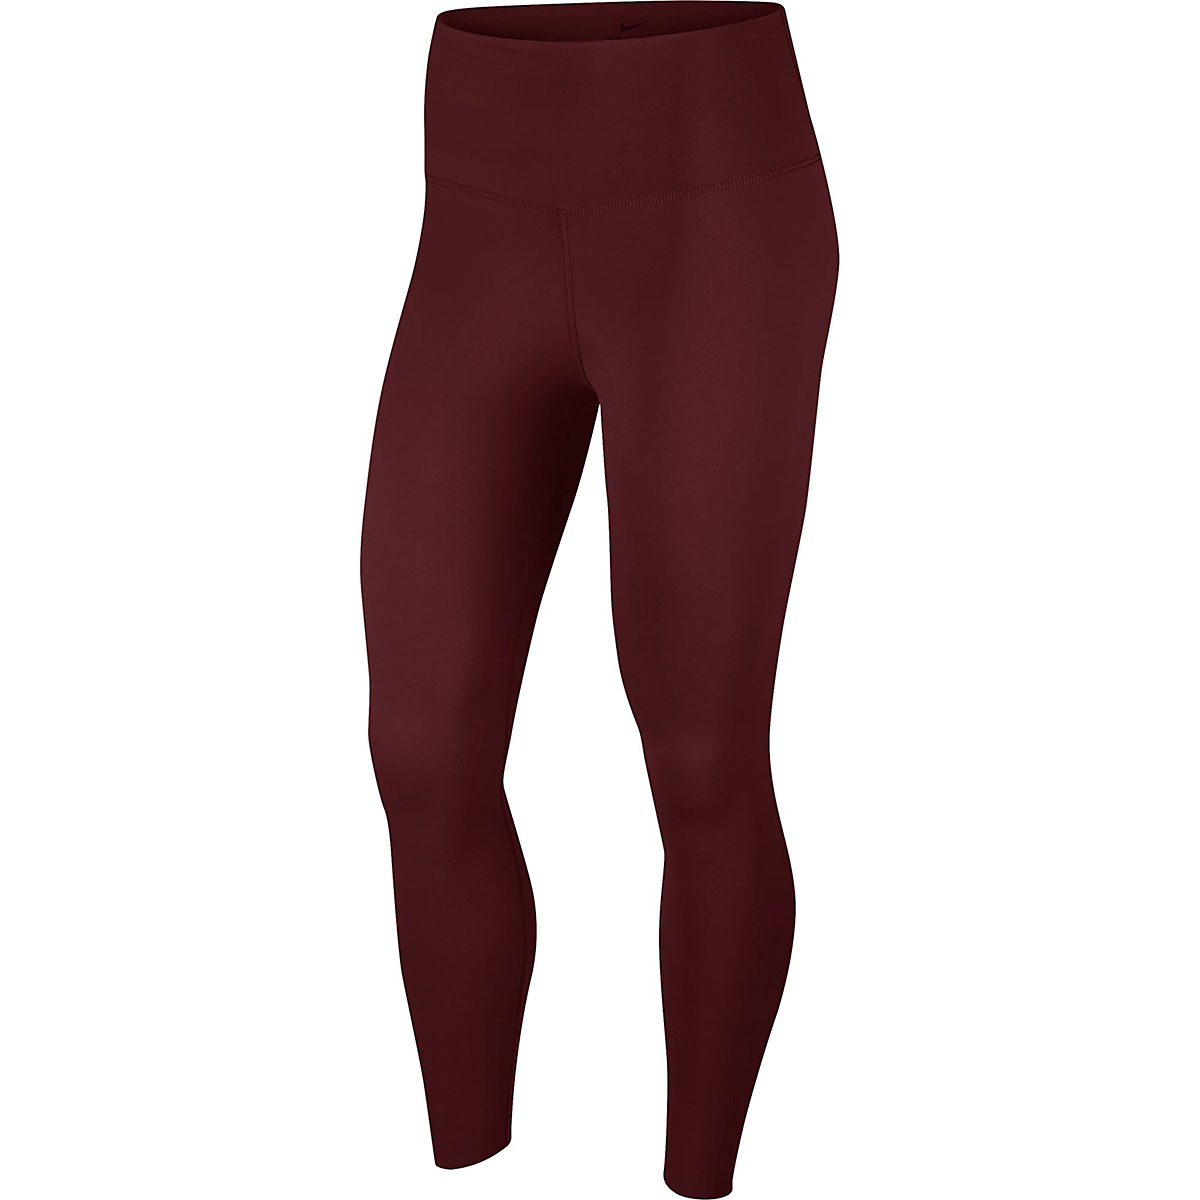 Women's Nike Luxe 7/8 Tights, , large, image 3